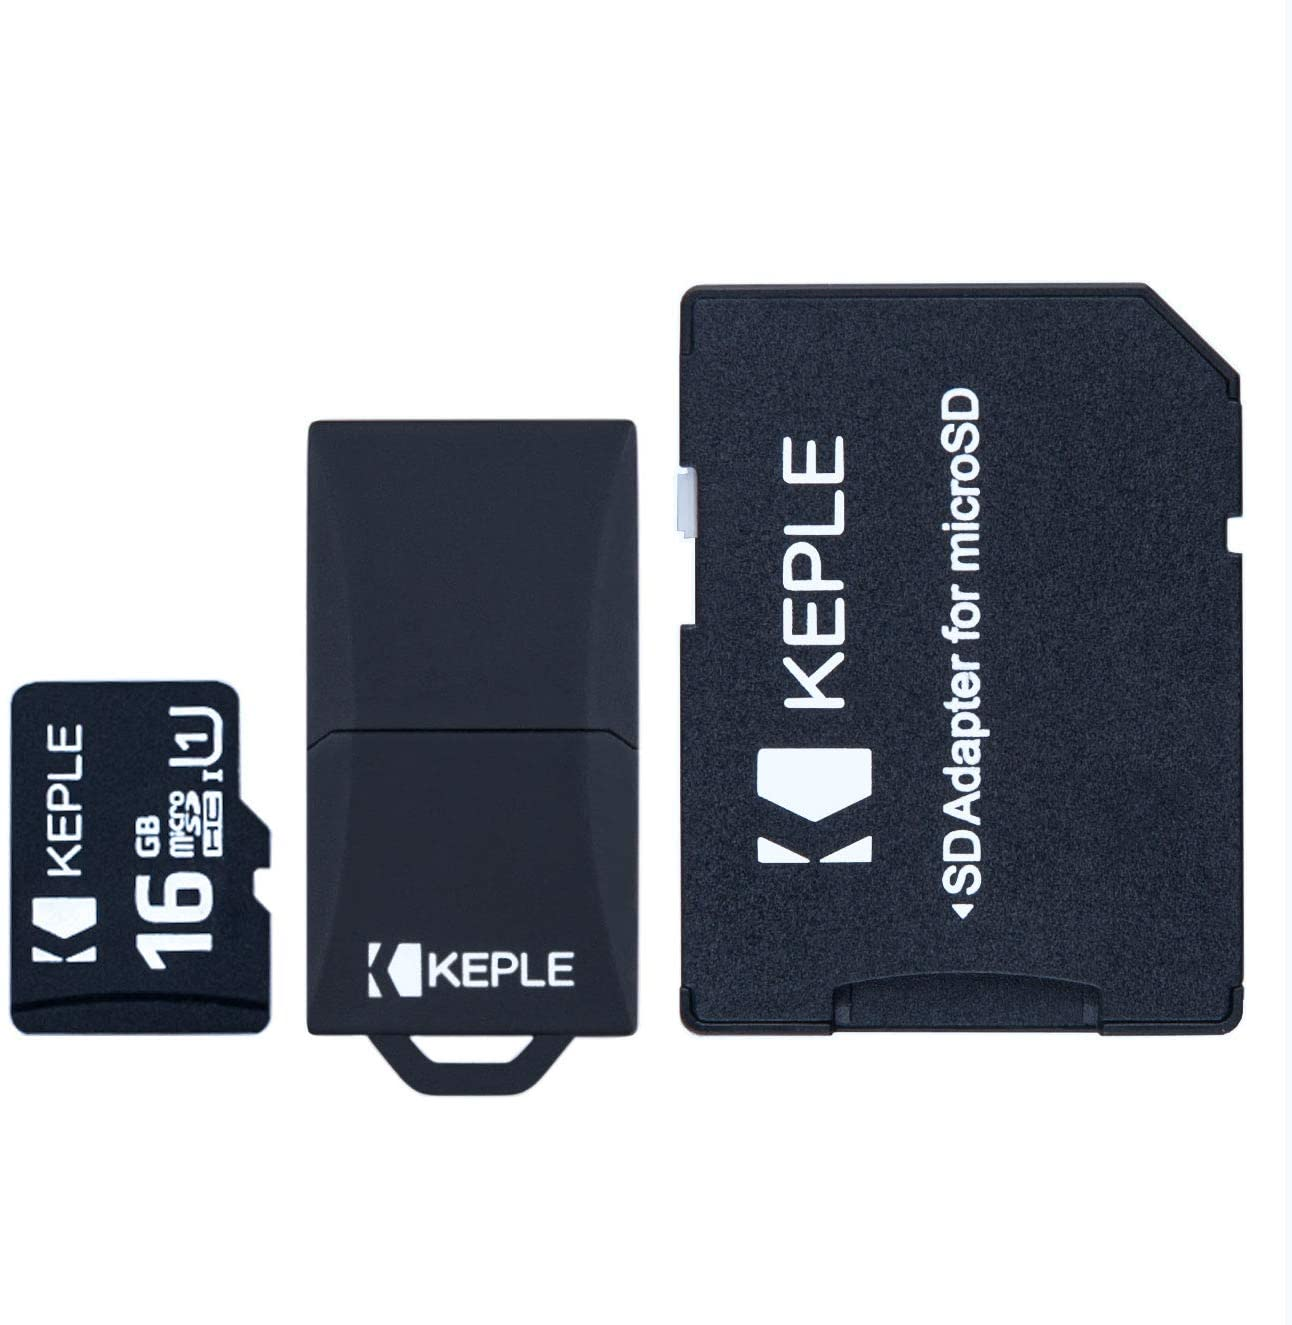 32GB microSD Memory Card   Micro SD Class 10 Compatible with Victure AC600, AC400, AC200 or Dragon Touch Vision 3 Sports Action Cameras Camcorder Action Camera Cameras   32 GB